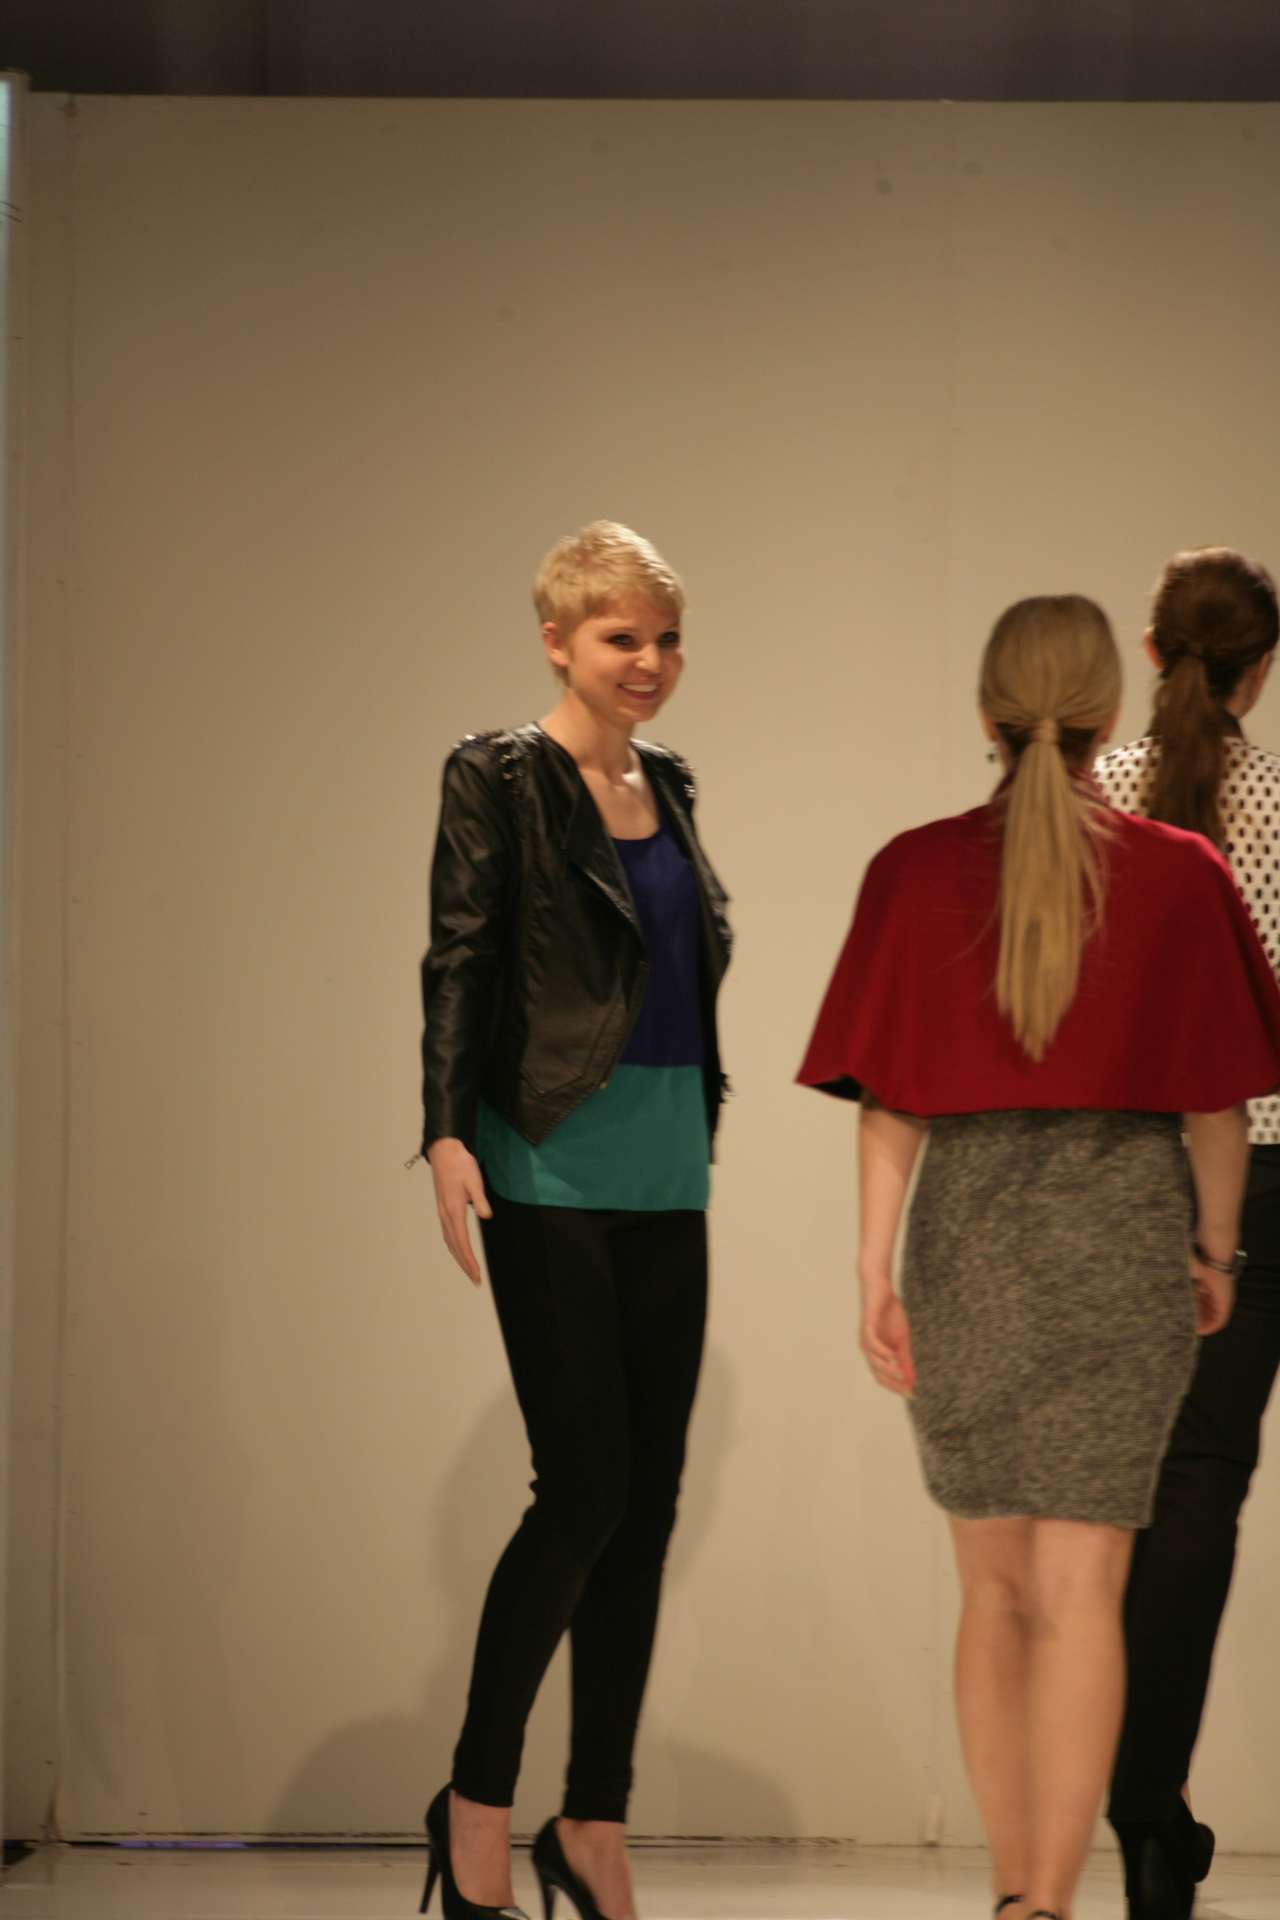 Kelly Druce with her Collection | Birmingham Fashion Week 2013Photo Credit: Vintage Inspired Passionista